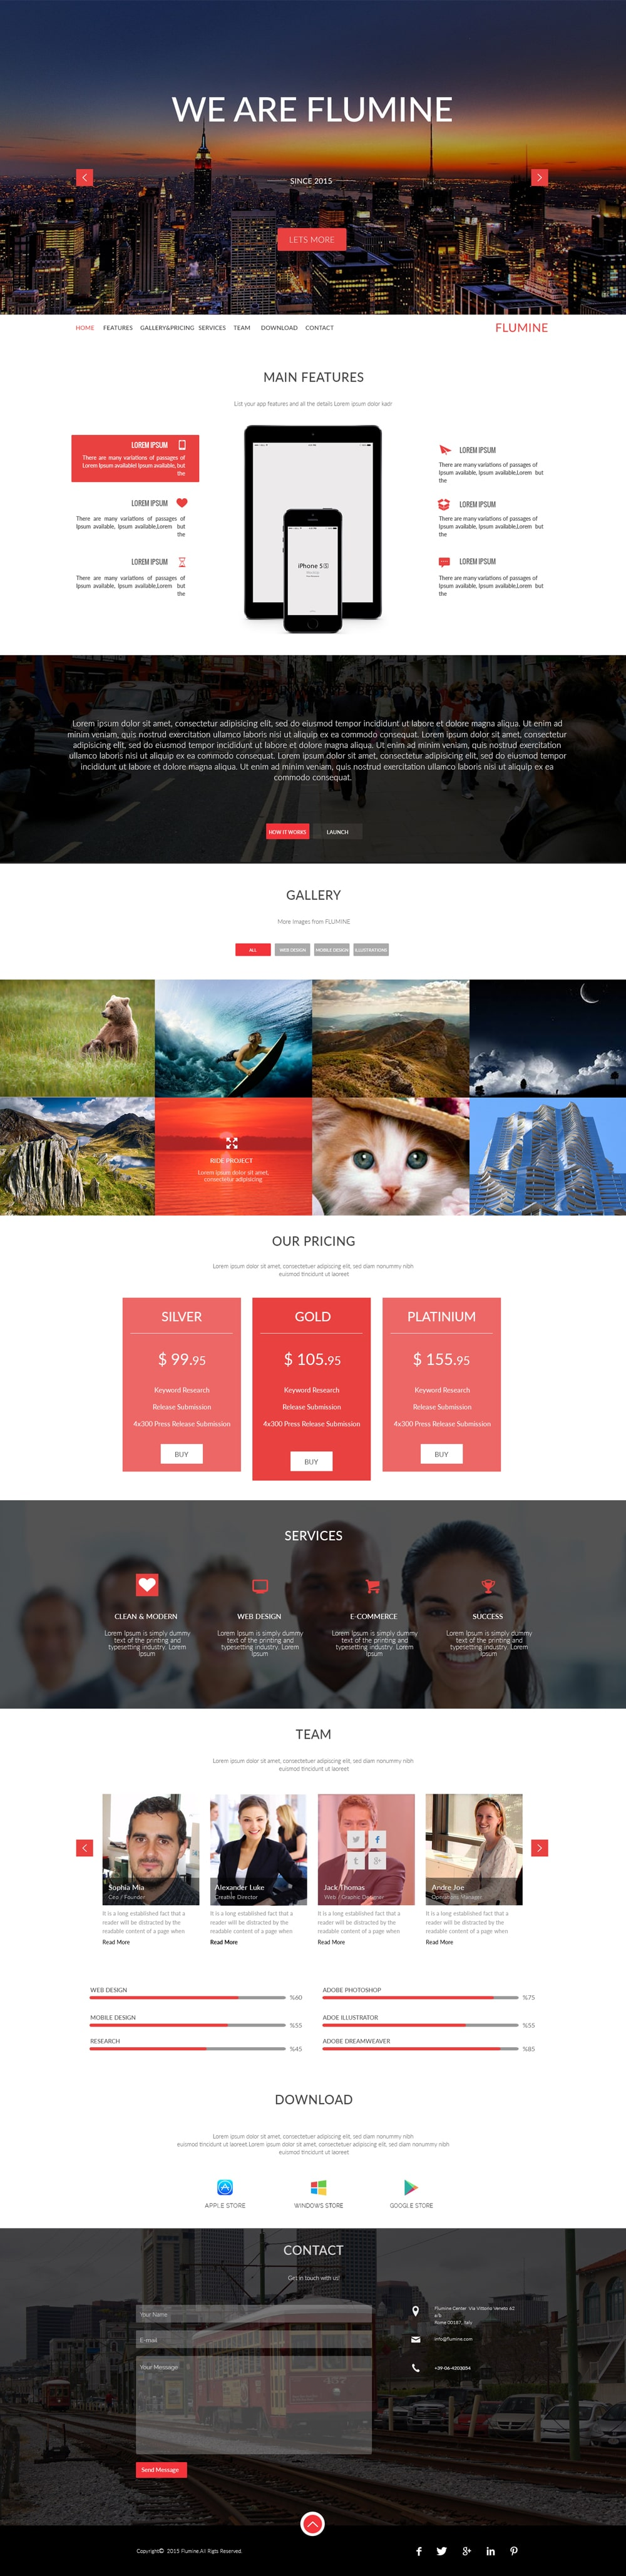 Free Multi Purpose Landing Page Web Template PSD